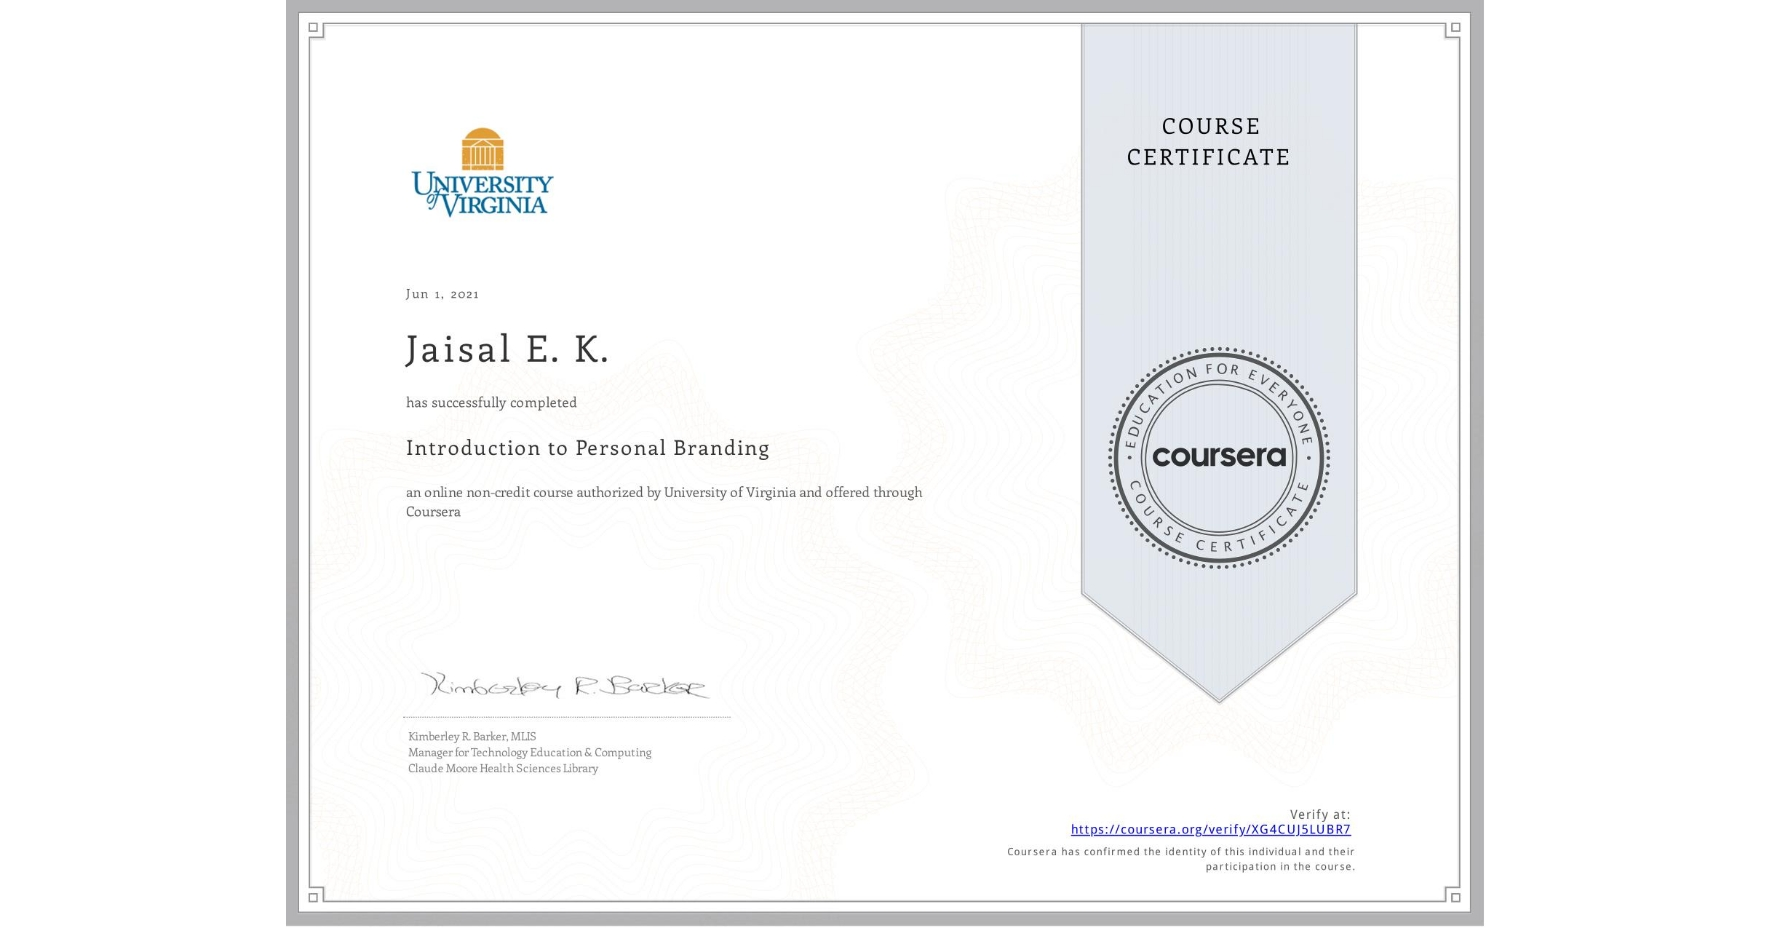 View certificate for Jaisal E. K., Introduction to Personal Branding, an online non-credit course authorized by University of Virginia and offered through Coursera